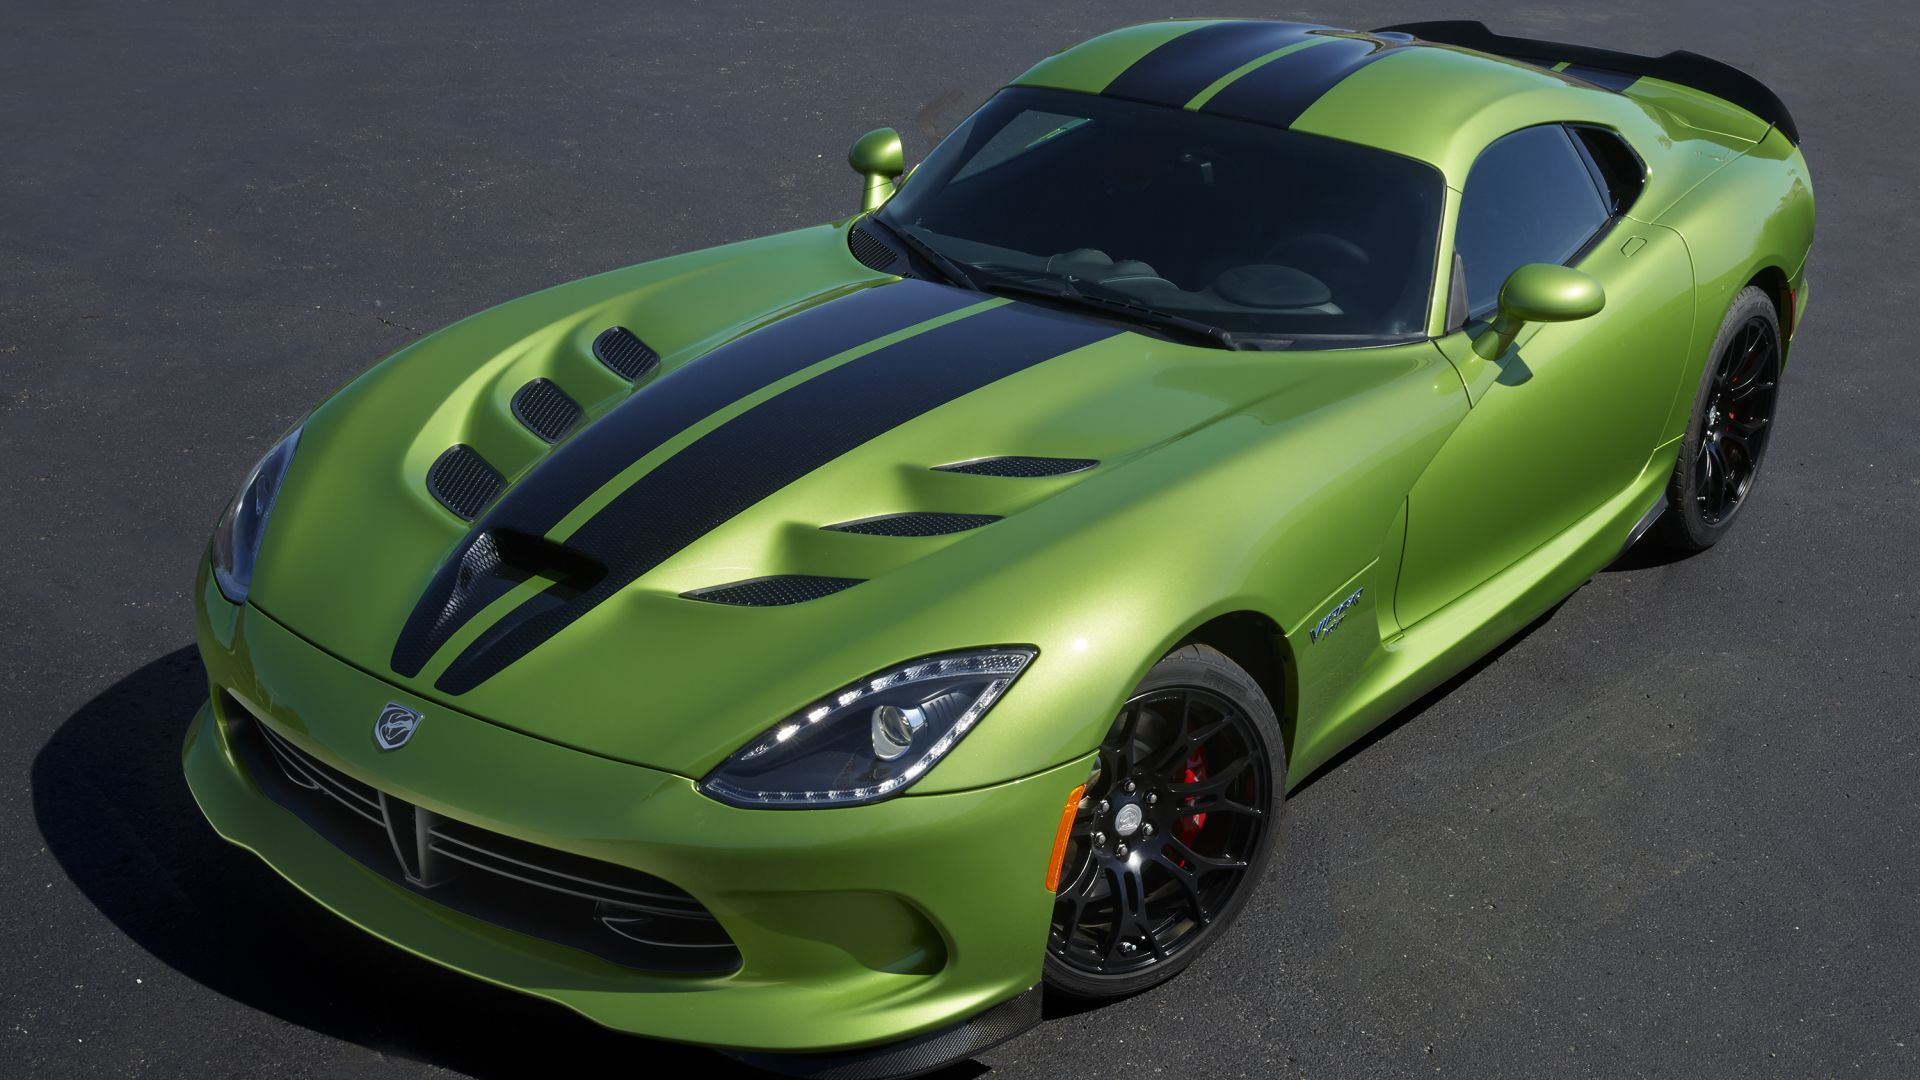 Dodge Viper GTS-R, Commemorative Edition ACR, green, speed (horizontal)